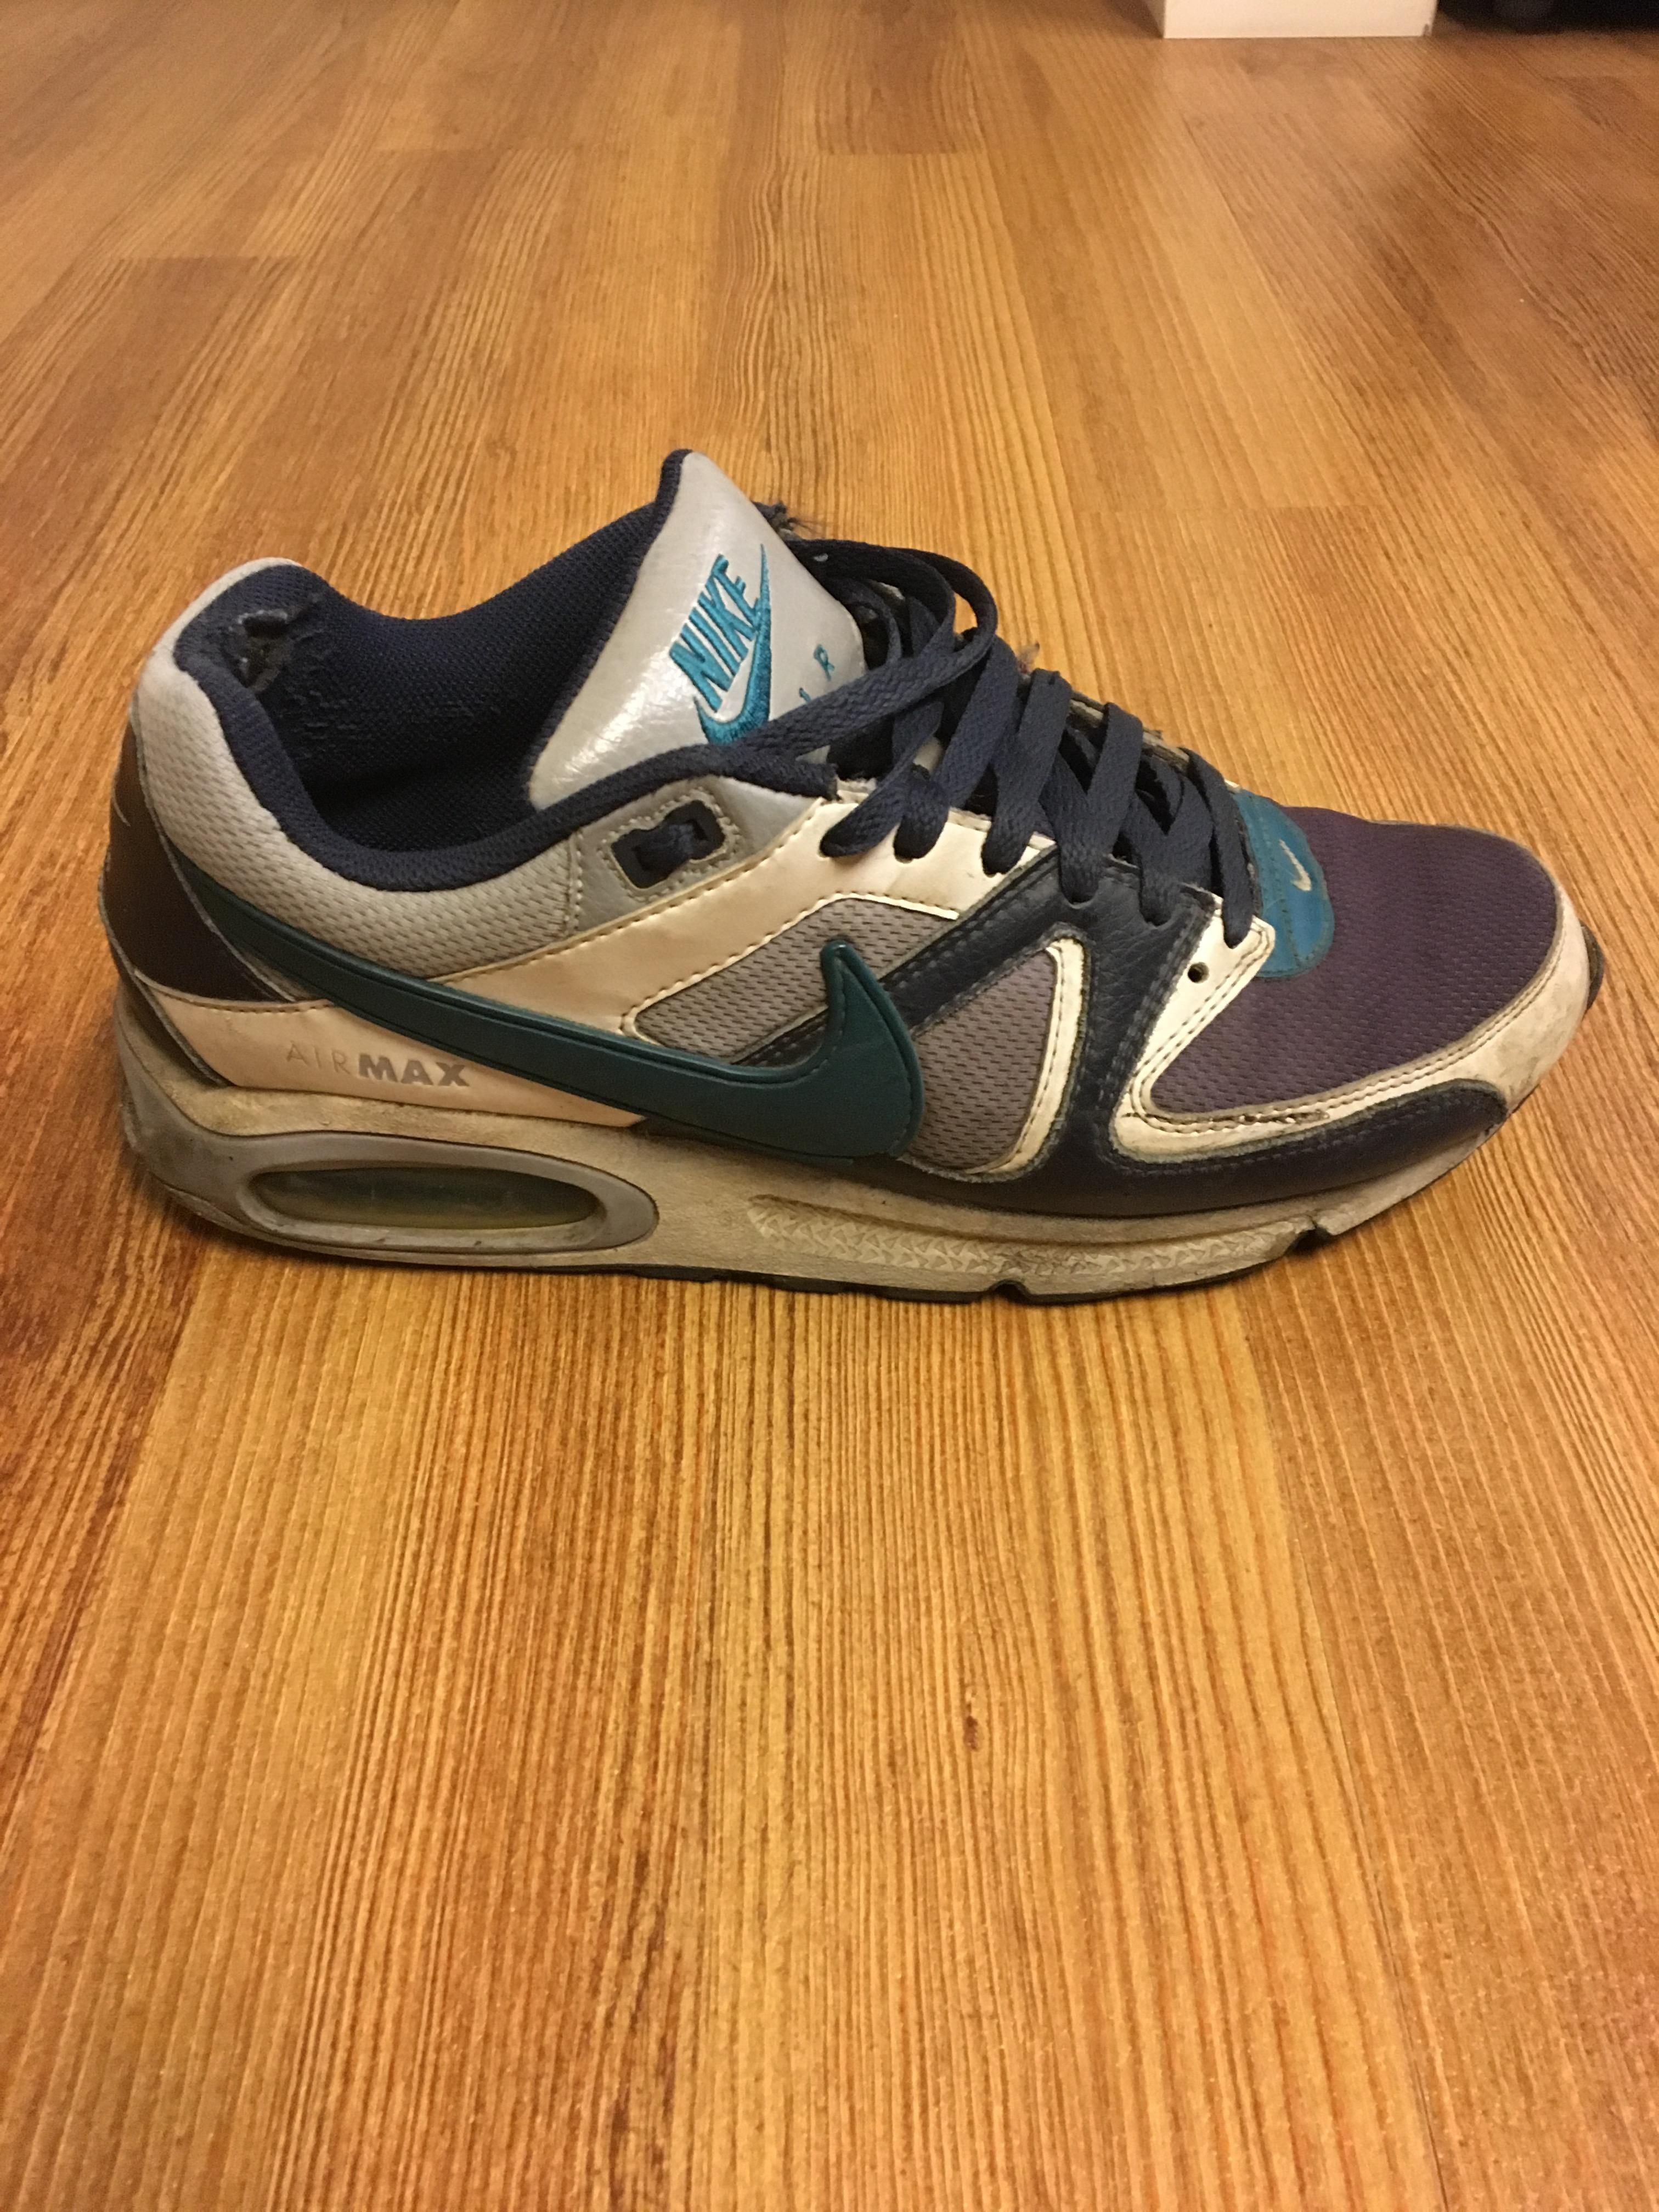 quality design f4922 e8f80 Does anyone know where online I can find a new pair of these Nike Air Max